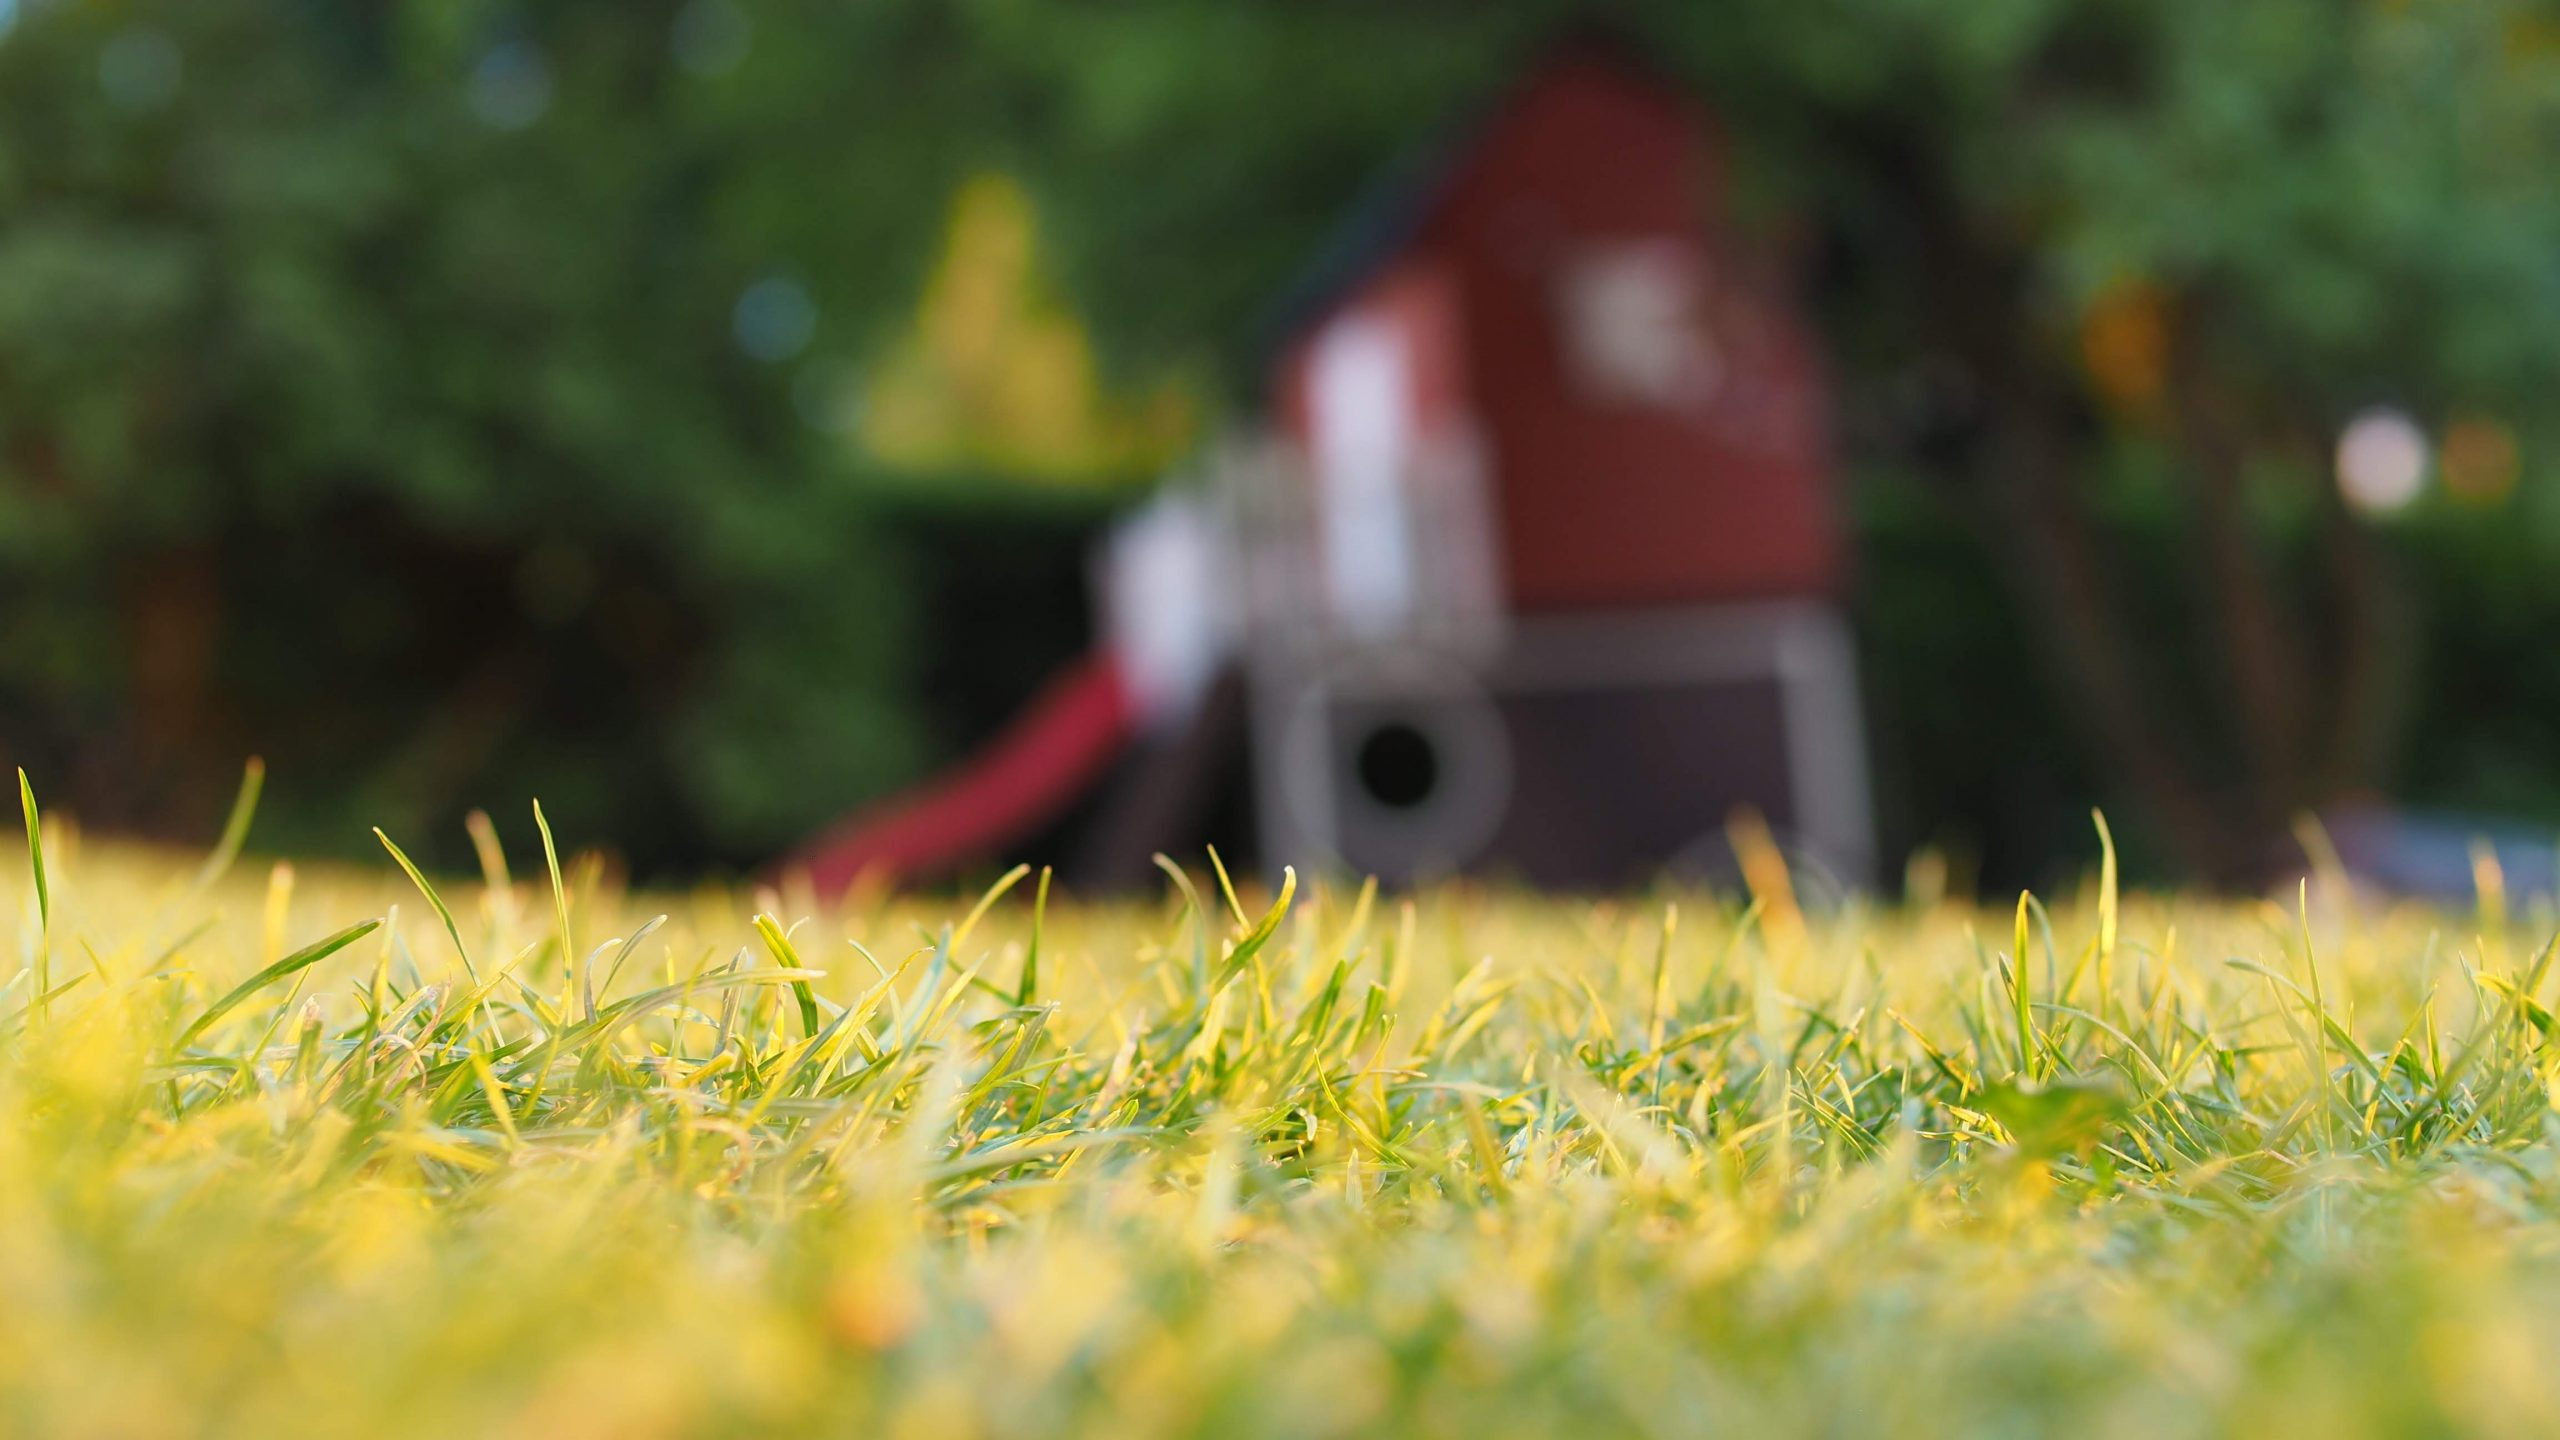 best local lawn care company in Mundelein mowing the lawn